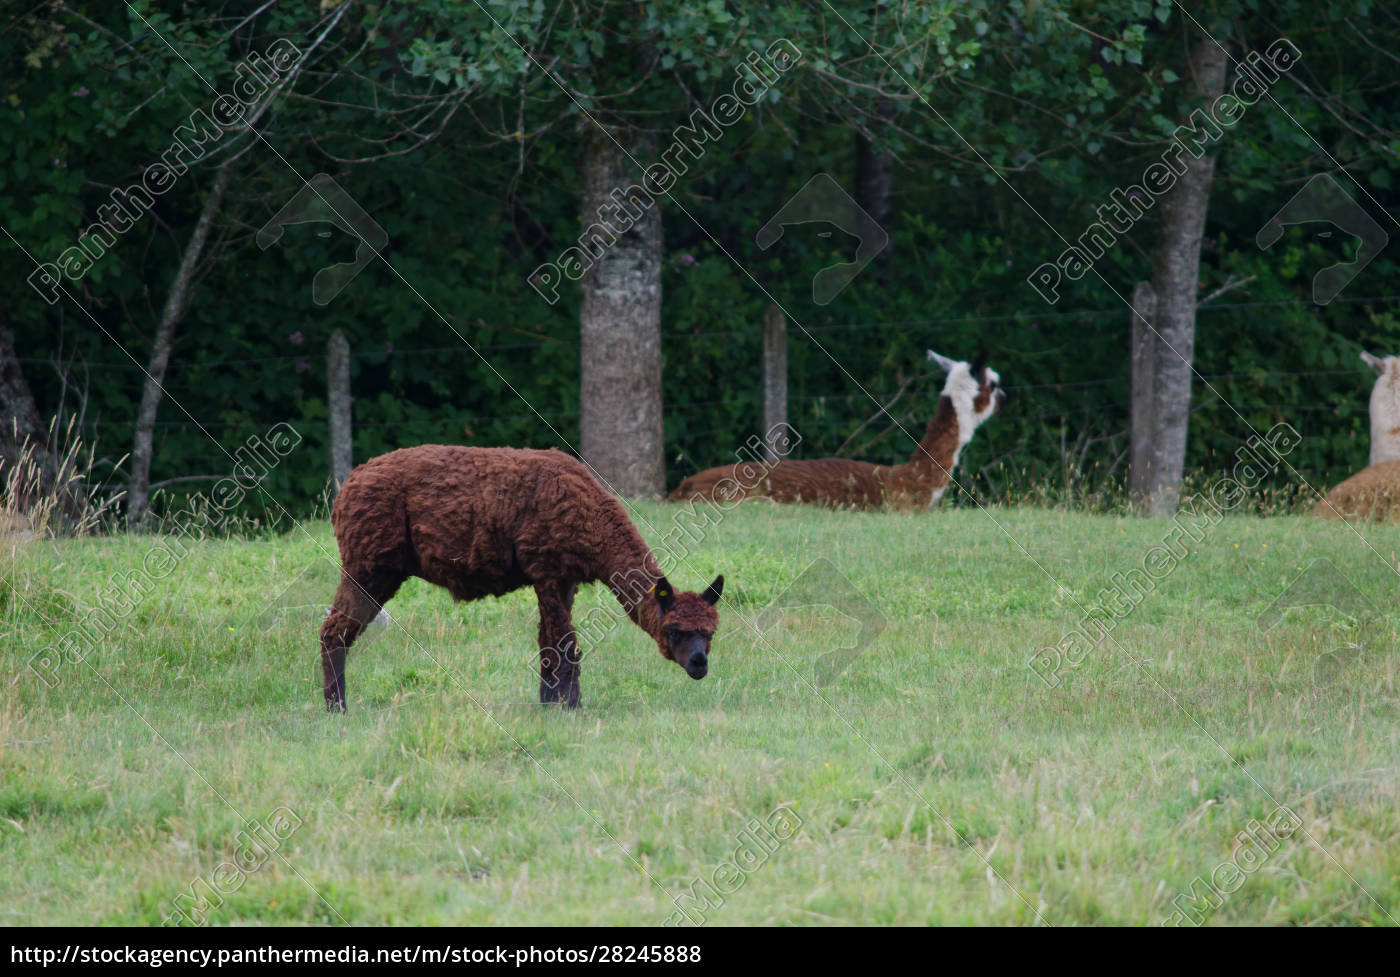 alpaca, vicugna, pacos, eating, in, a - 28245888